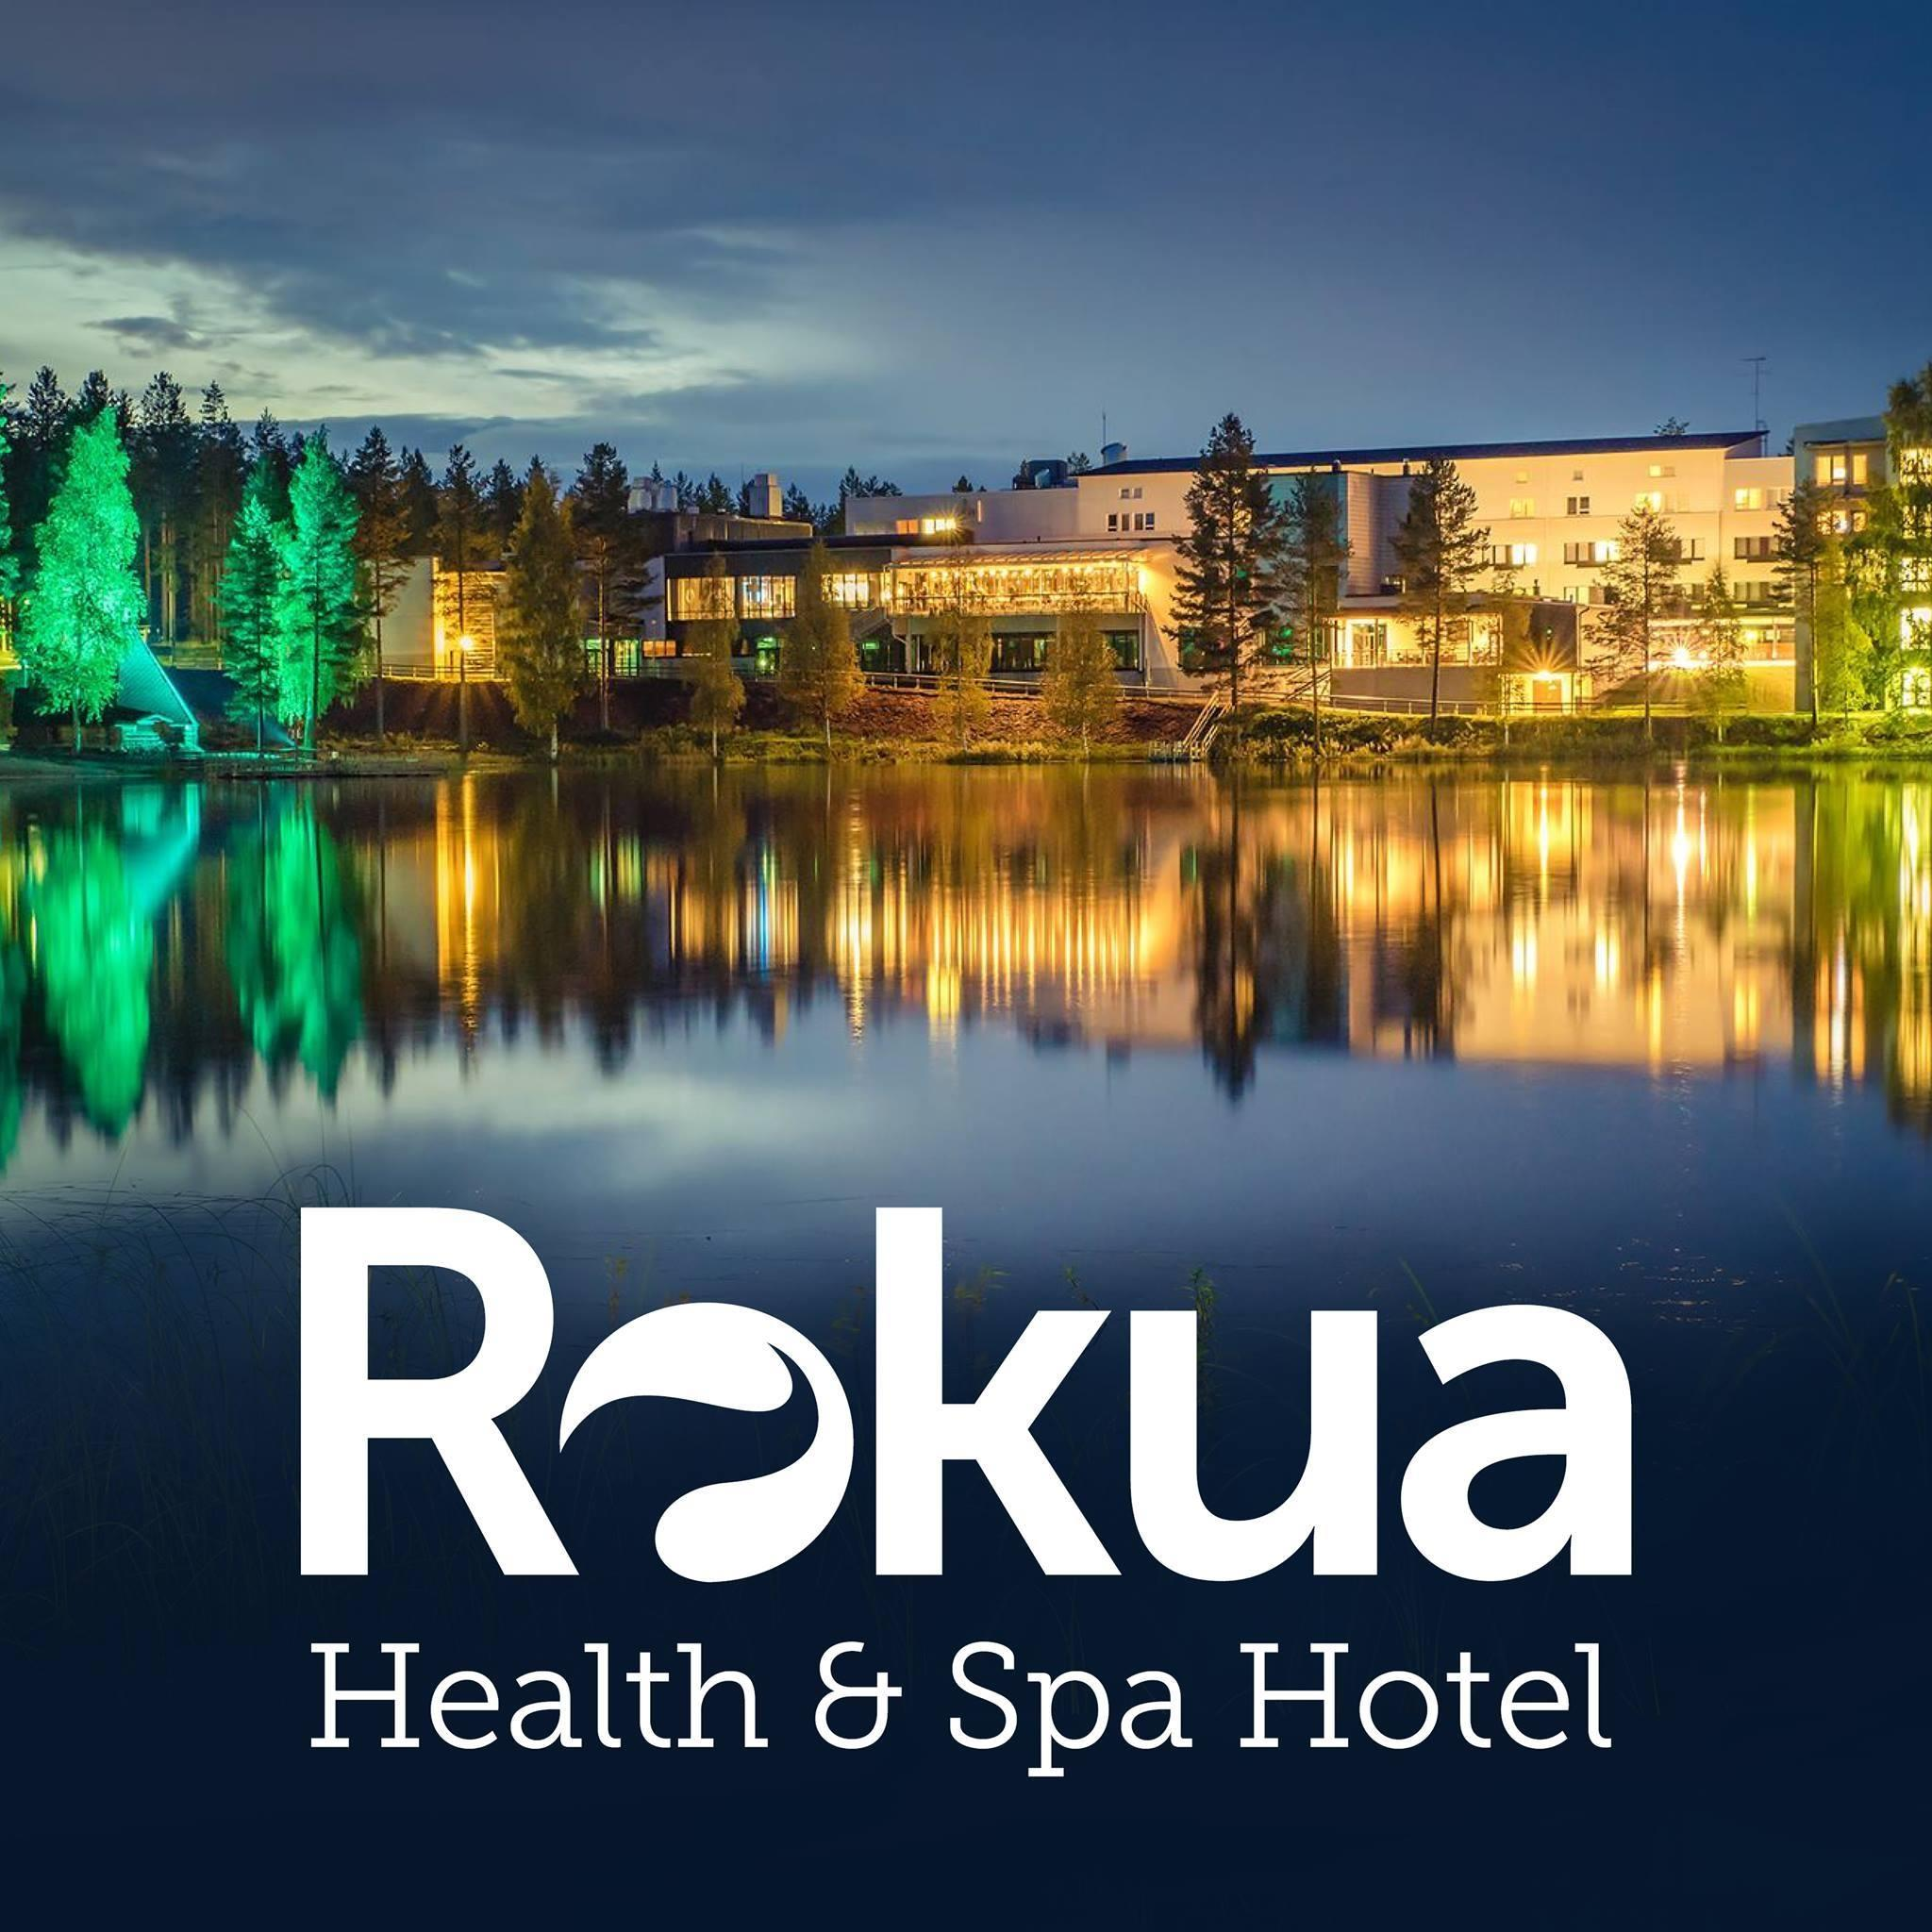 Rokua Health & Spa Hotel